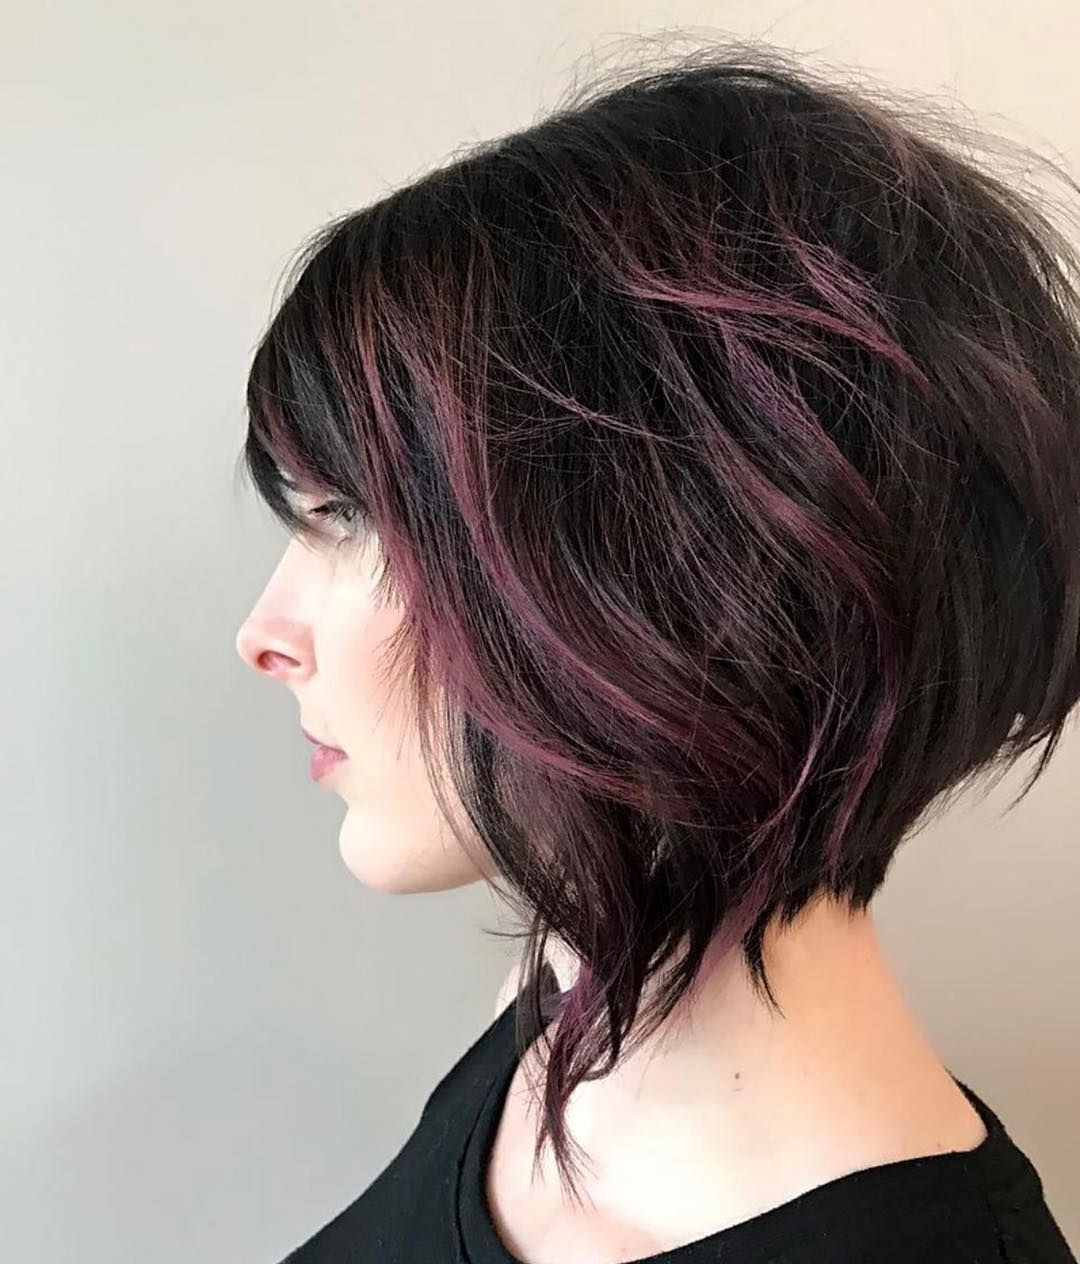 Favorite Marvelous Mauve Shaggy Bob Hairstyles With We Love This Short Angled Bob And Dark Purple Balayage (View 10 of 20)